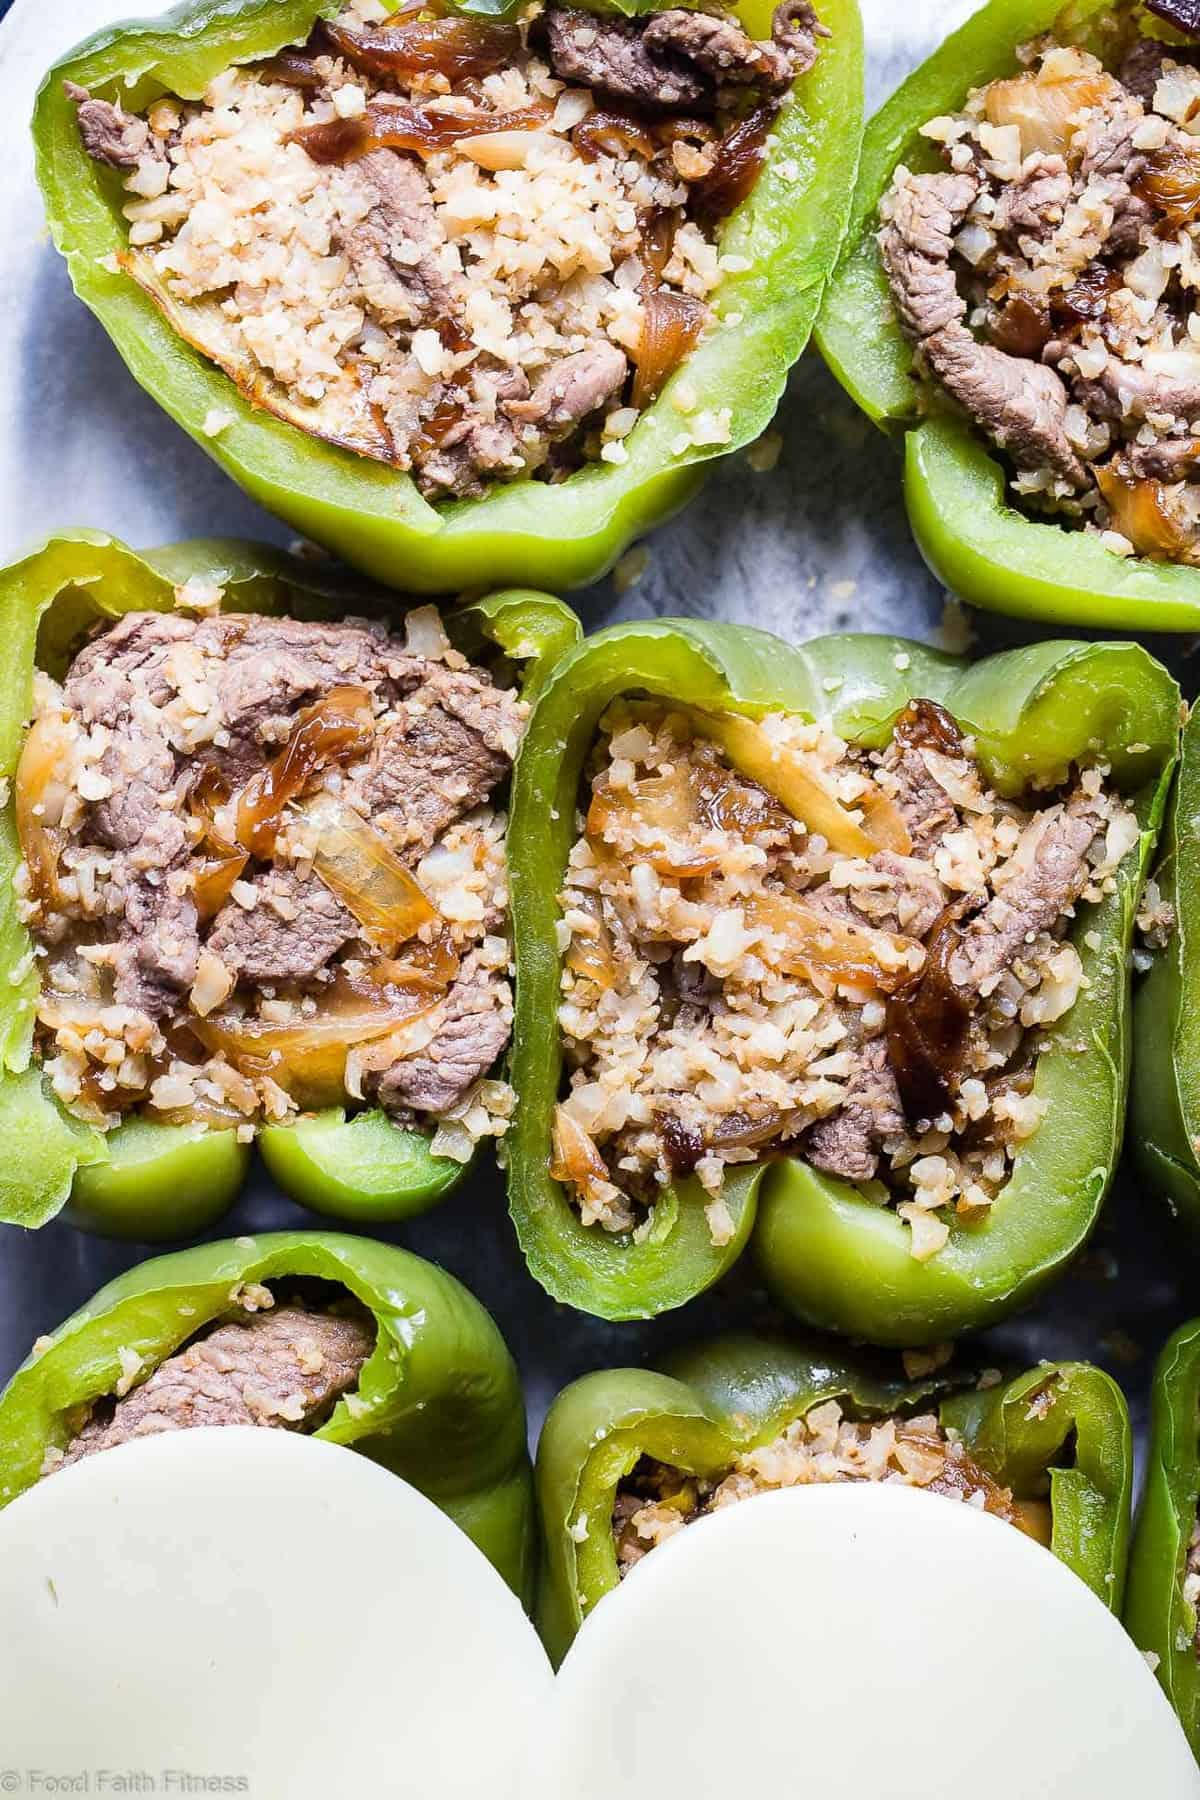 Low Carb Keto Philly Cheesesteak Stuffed Bell Peppers - These stuffed peppershave all the flavors of your favorite sandwich in a healthy, low carb, easy weeknight meal that will please even picky eaters! Healthy comfort food at its best! | #Foodfaithfitness | #Glutenfree #Keto #Lowcarb #Healthy #Grainfree